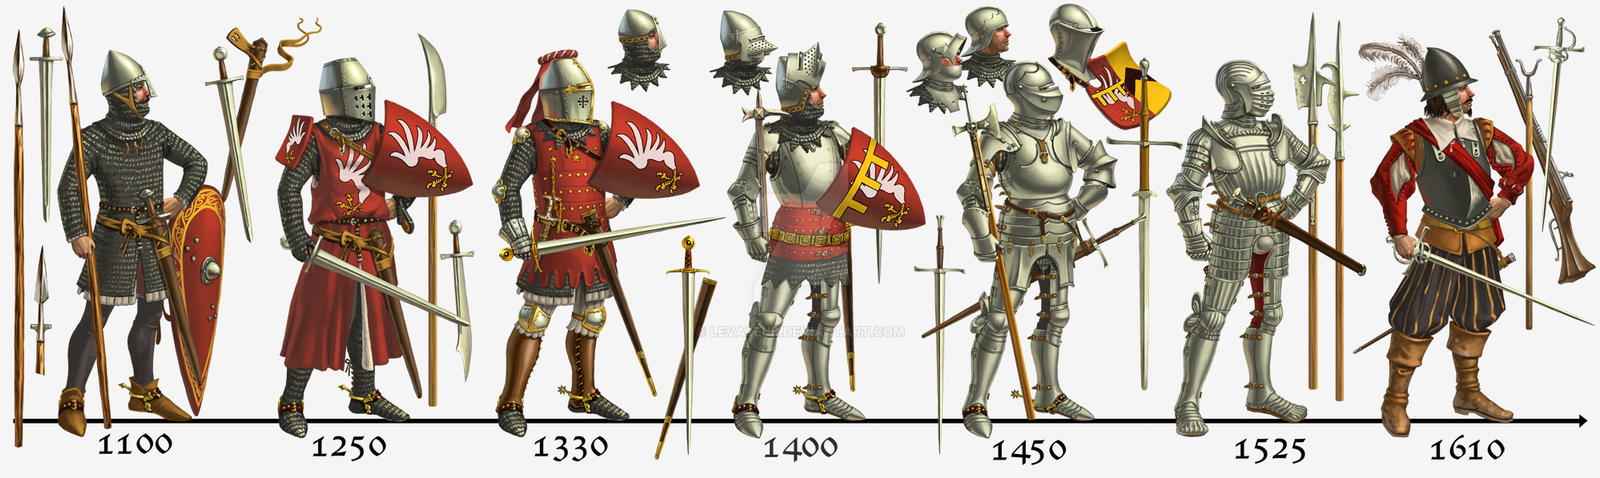 the evolution of body armor throughout history As the weapons changed, armor changed armor and weapons often  leapfrogged each other in development as weapons had to overcome the  protection that.